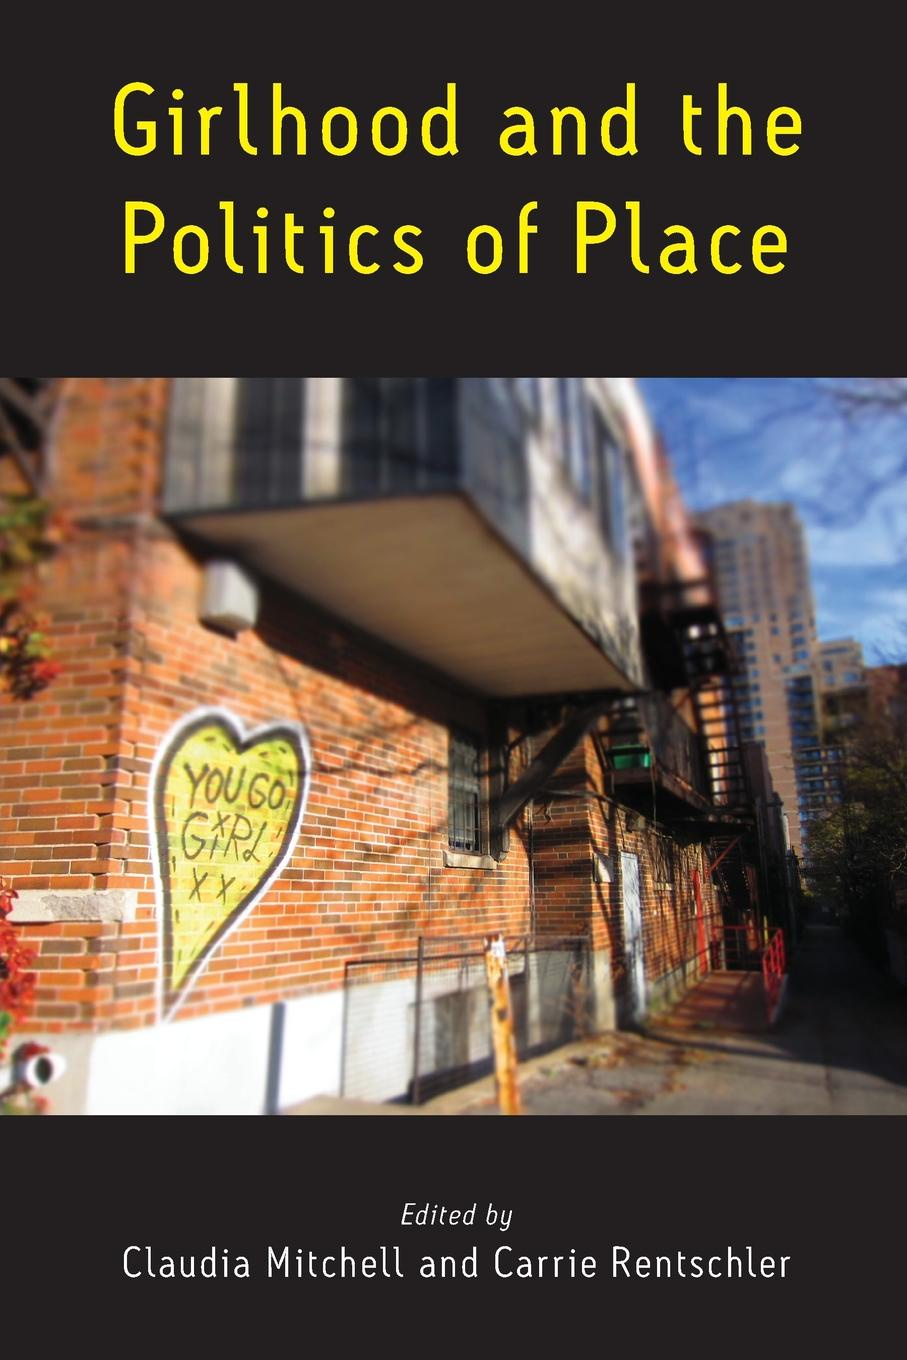 Girlhood and the Politics of Place geoff whitty making sense of education policy studies in the sociology and politics of education